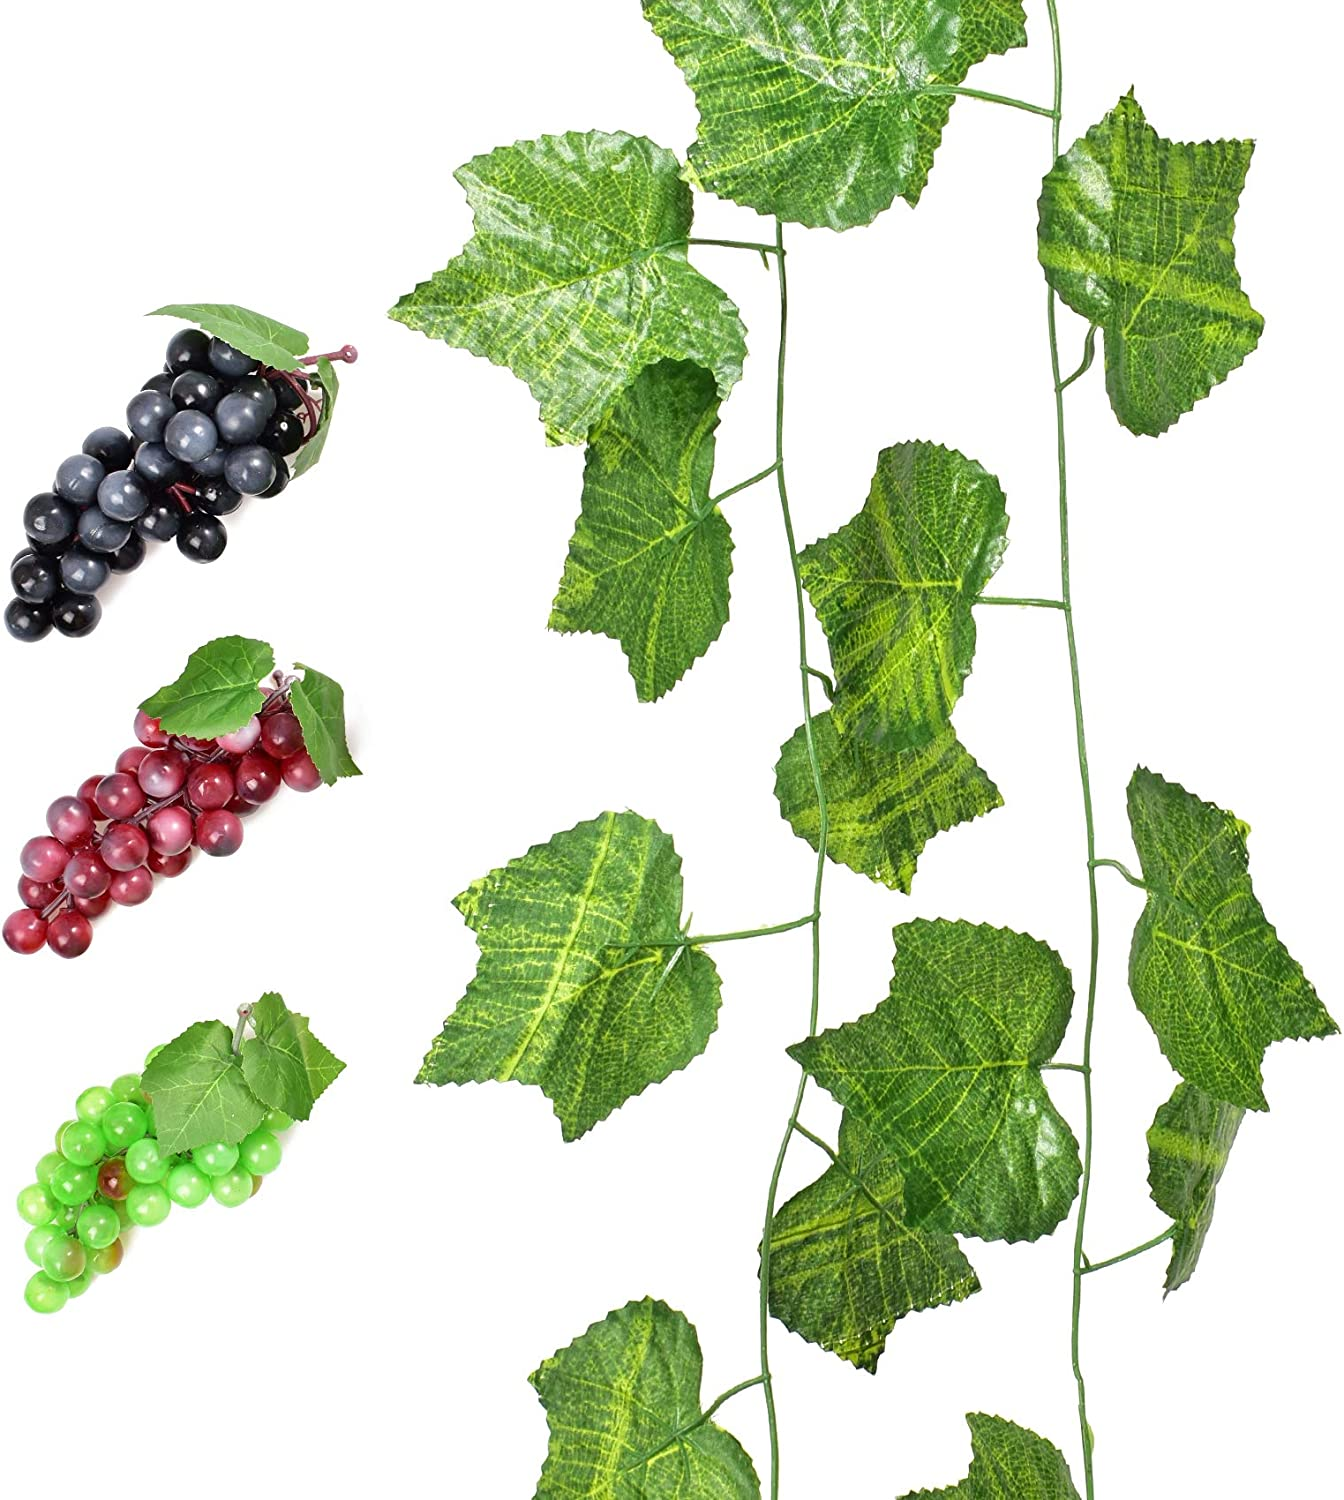 HUIANER 3 Bunches of Fake Grapes Simulation Fruit with Artificial Vines Lifelike Leaves for Wedding Home Indoor Outdoors Party Garden Wall Decoration(Small)